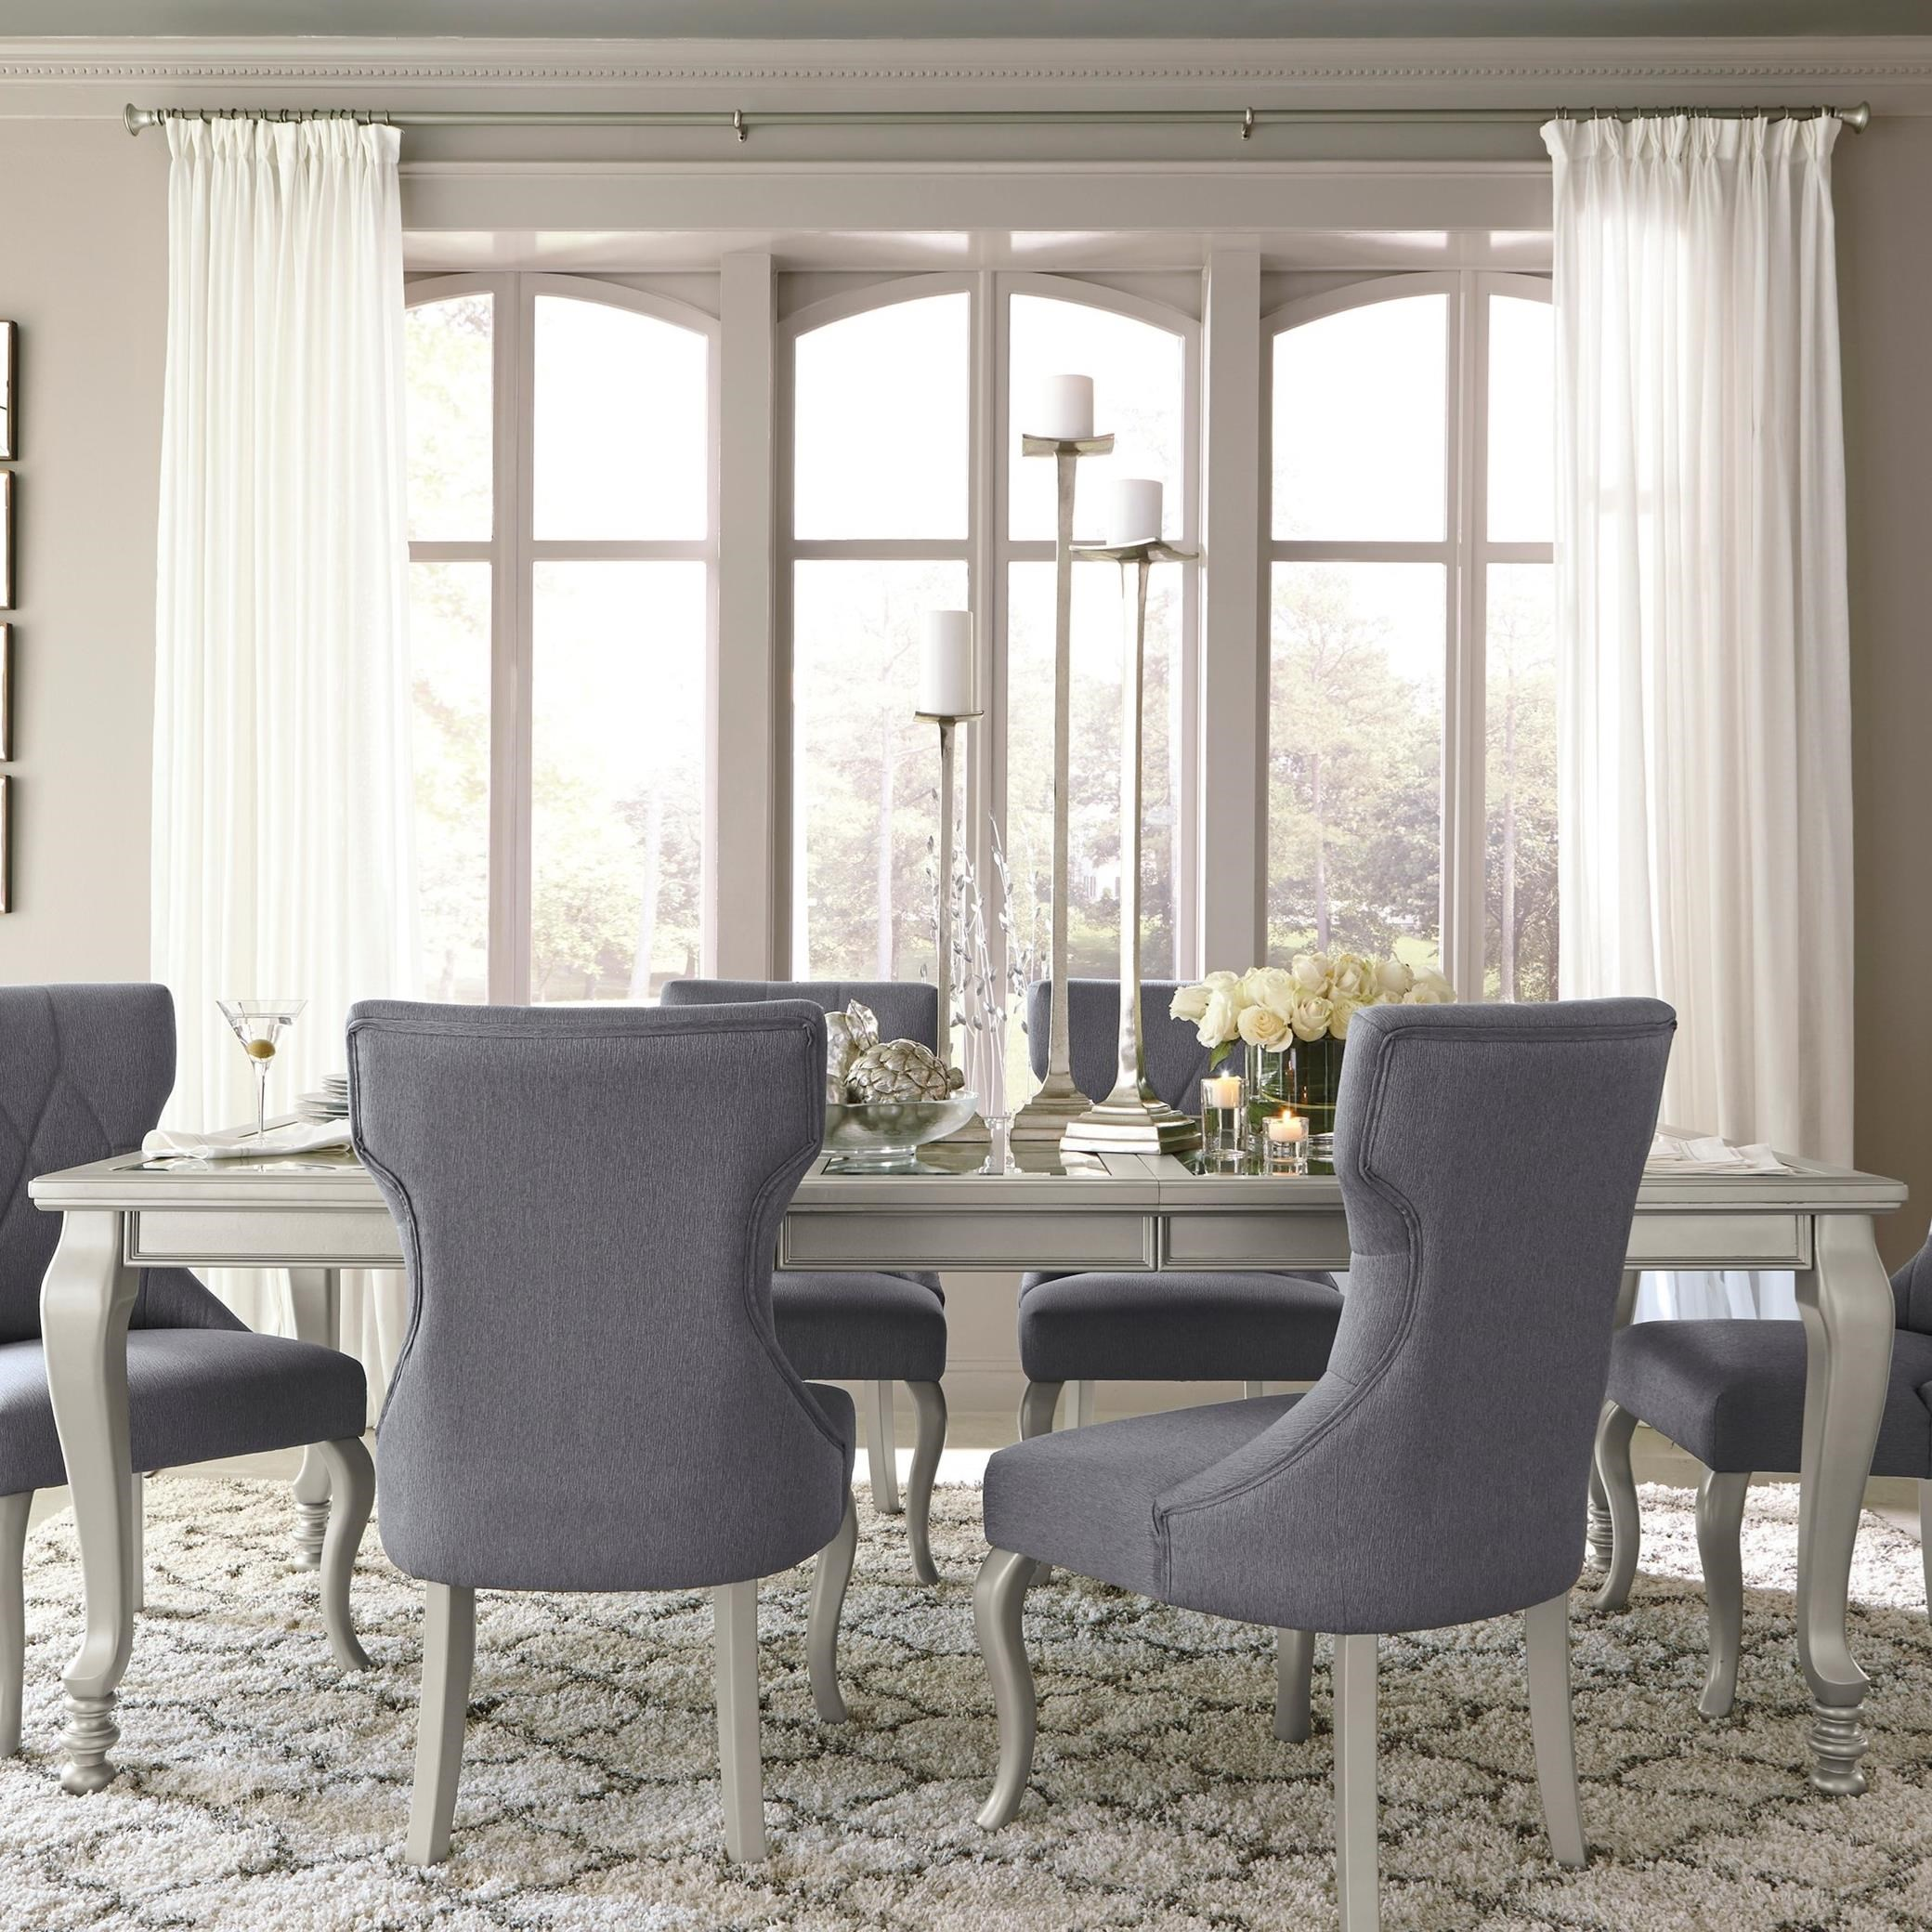 Ashley Furniture Dinette Set: Ashley Signature Design Coralayne 5-Piece Rectangular